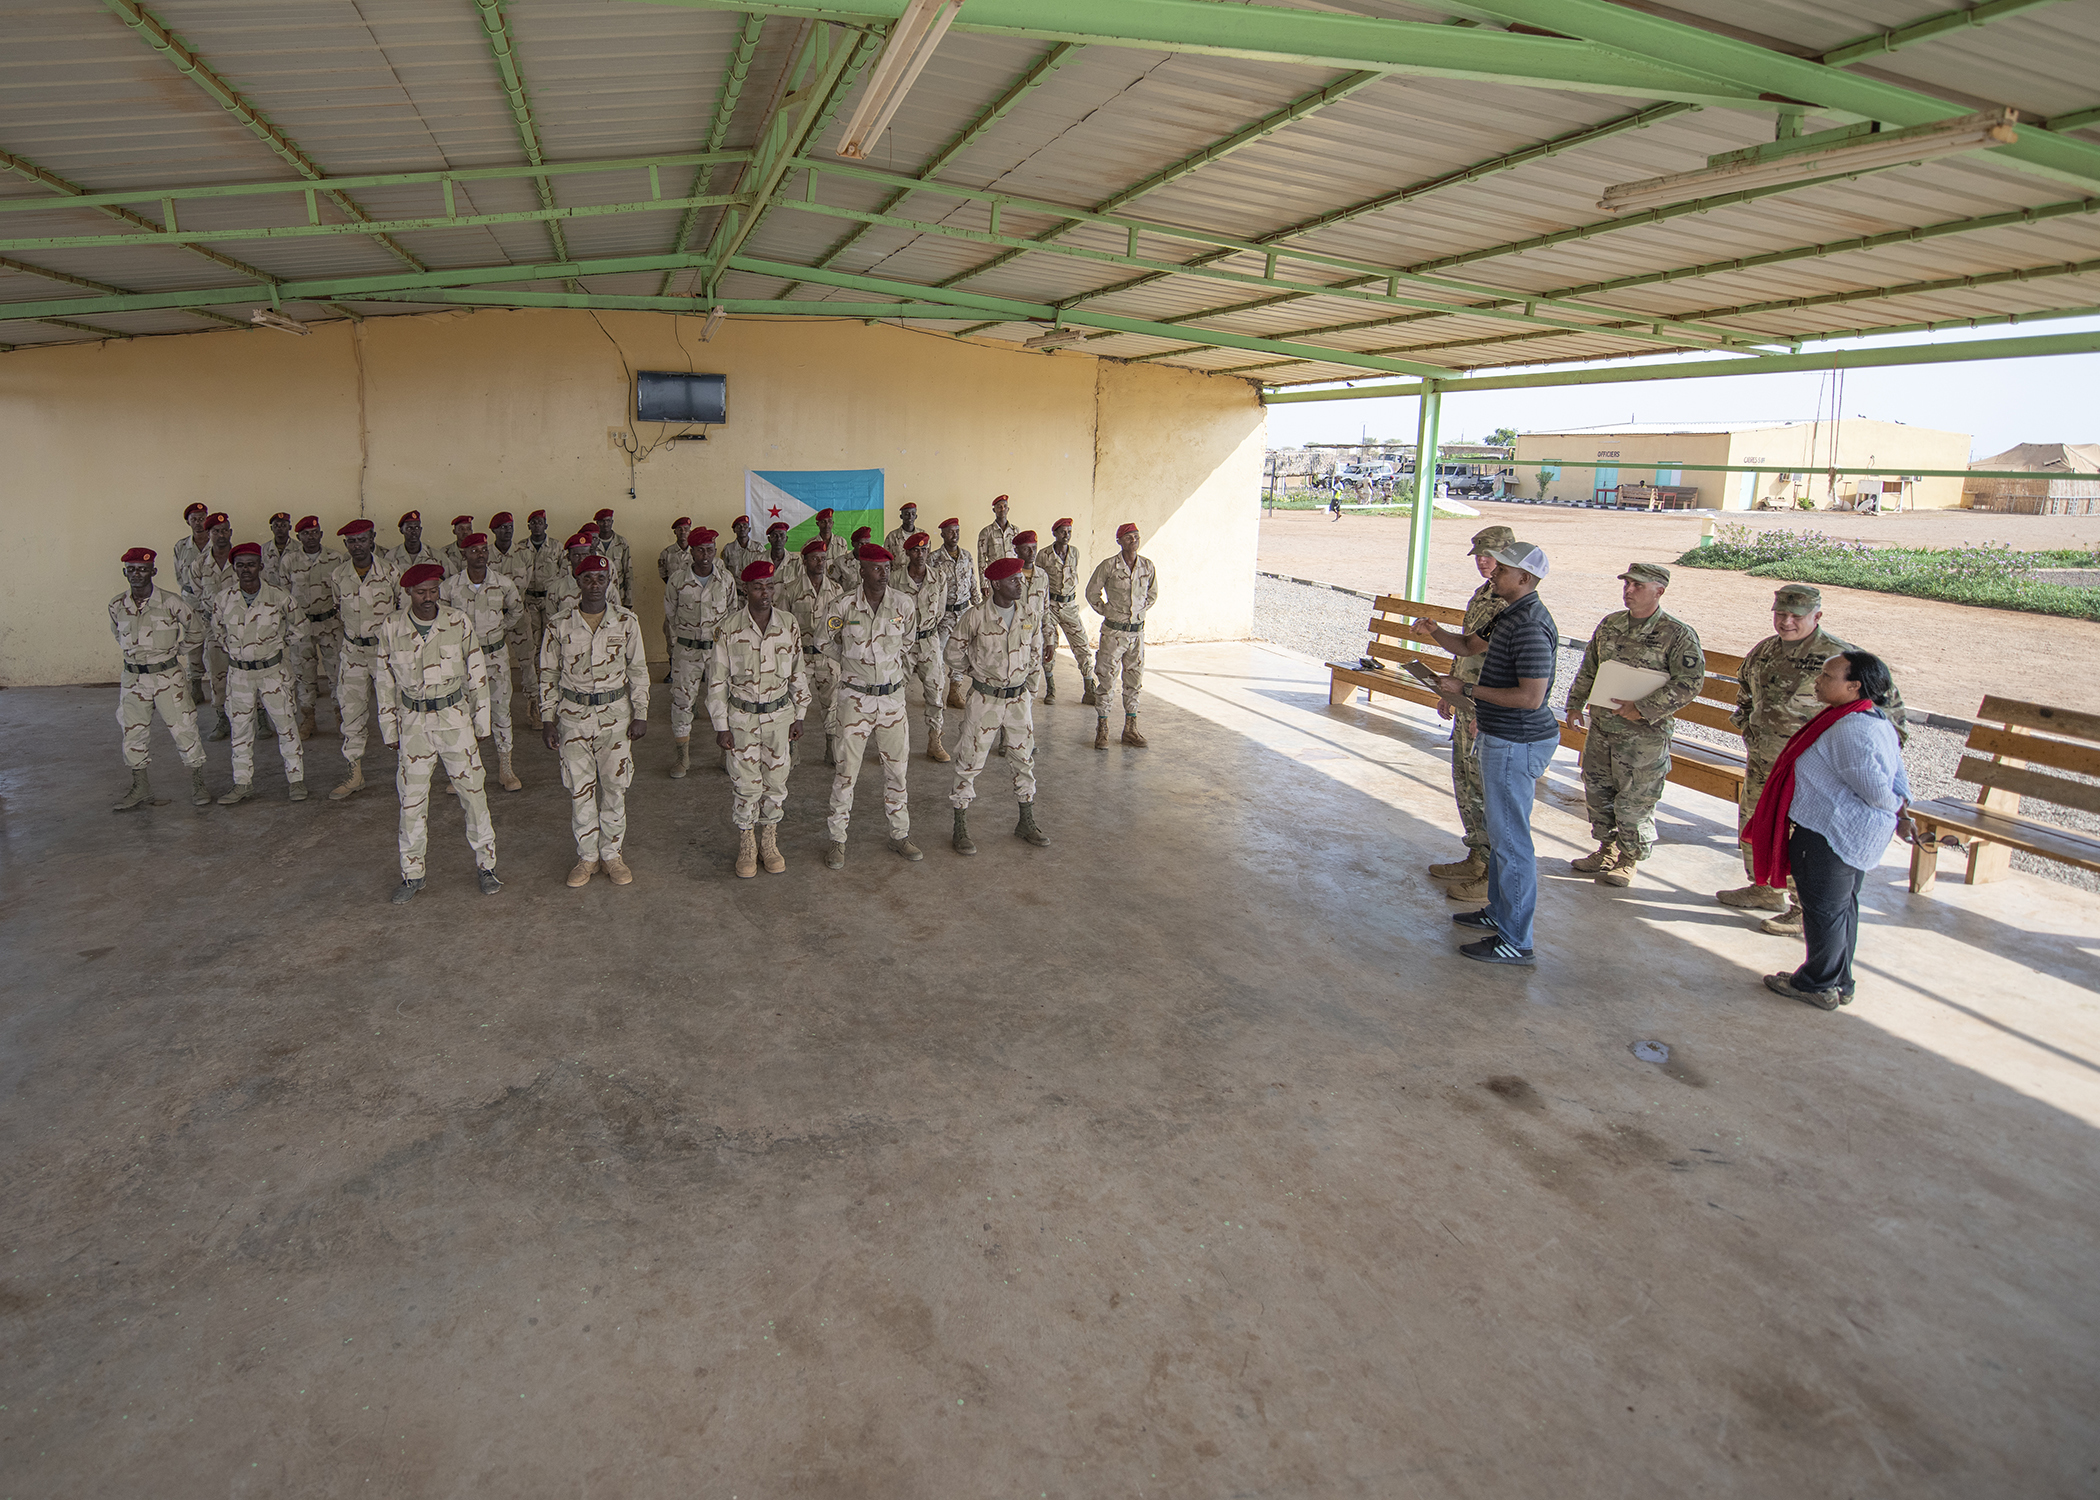 Rapid Intervention Battalion (RIB) soldiers from the Djiboutian army's elite military force stand in formation during an NCO course graduation at a training location near Djibouti, March 7, 2019. U.S. Soldiers with 1-26 Infantry Battalion, 2nd Brigade Combat Team, 101st Airborne, assigned to Combined Joint Task Force-Horn of Africa, taught the course to the RIB soldiers. (U.S. Air Force photo by Tech. Sgt. Shawn Nickel)